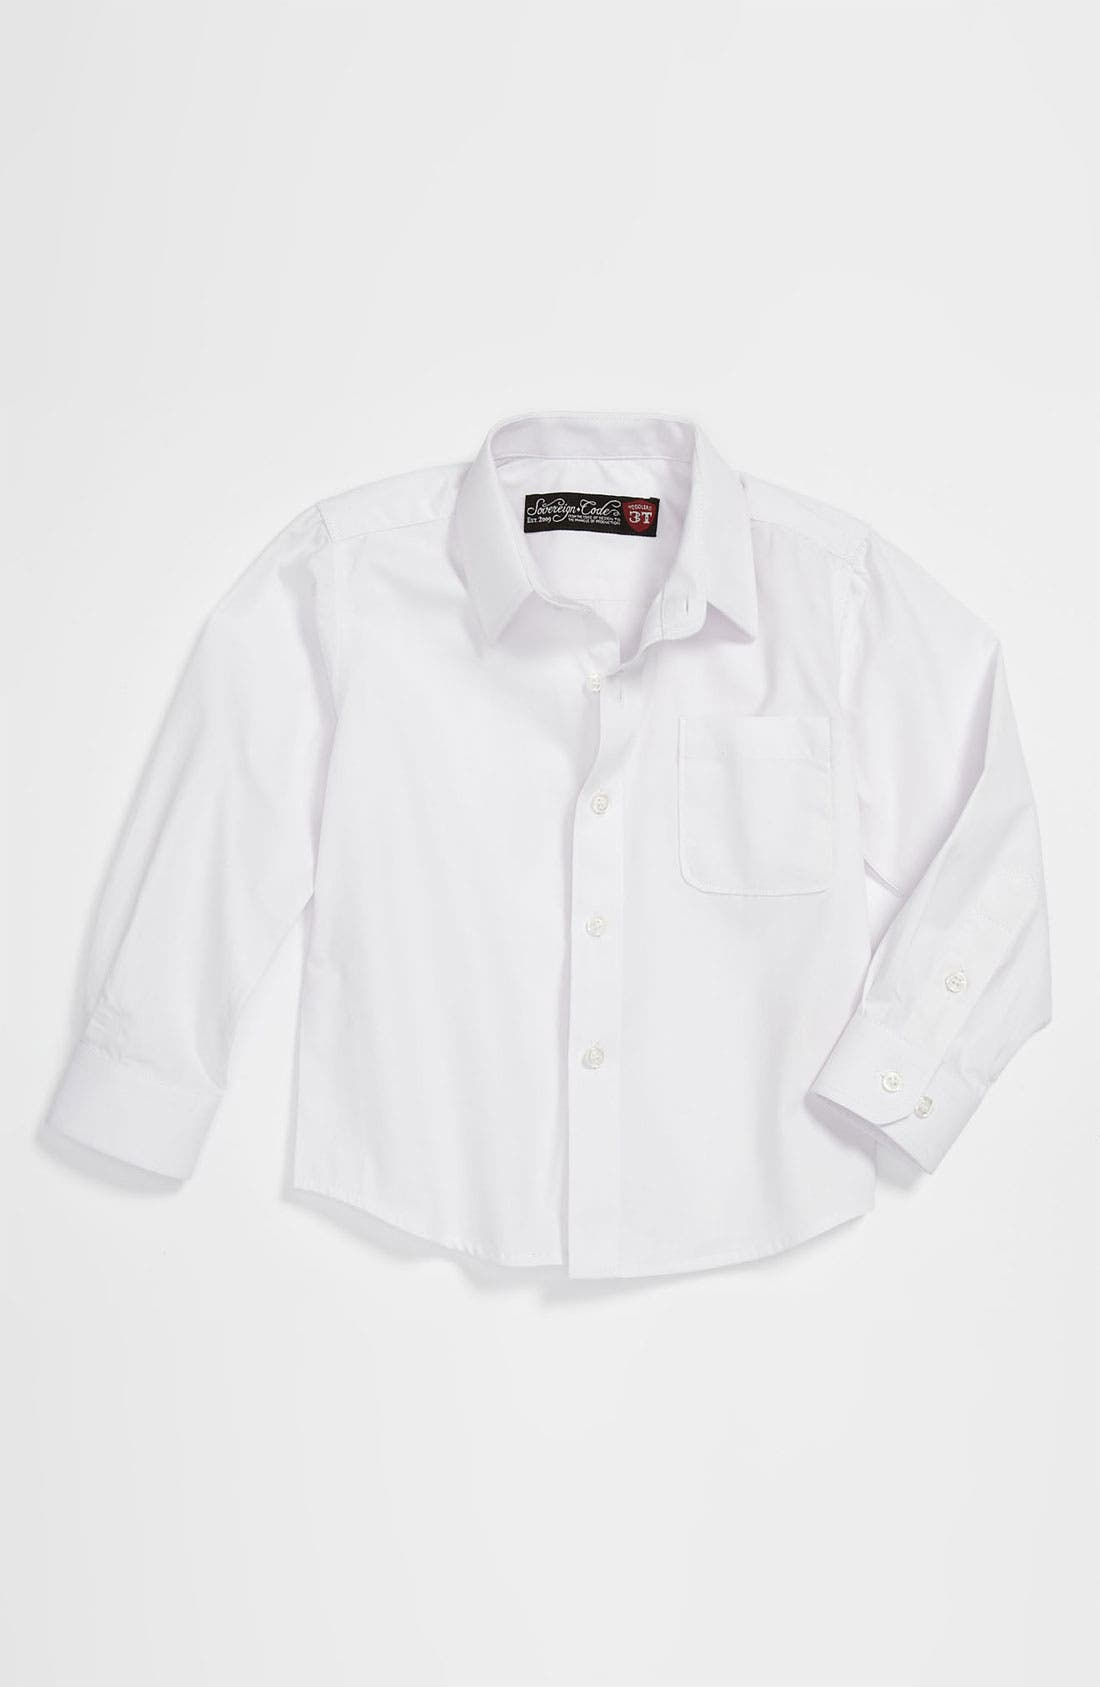 Alternate Image 1 Selected - Sovereign Code Woven Dress Shirt (Toddler)